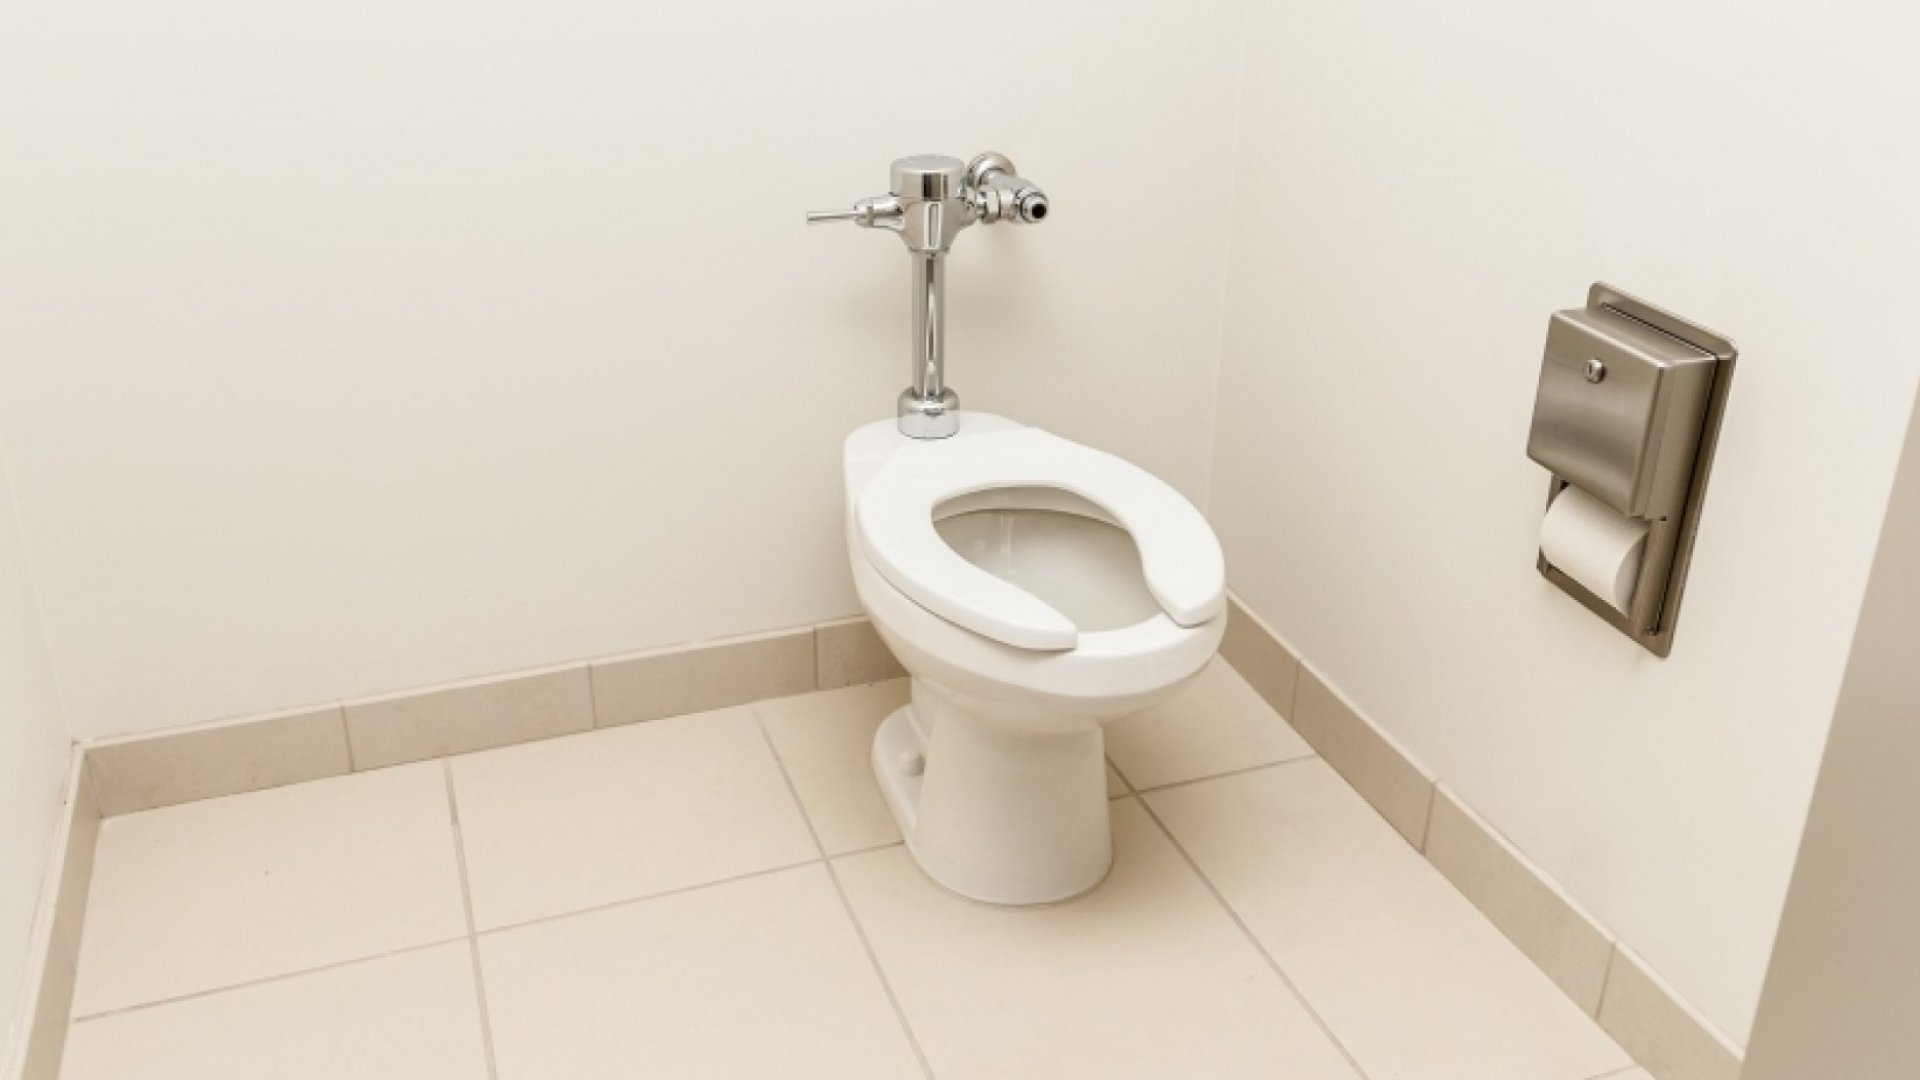 The Surprising Way a Toilet Can Reveal Your Company Culture